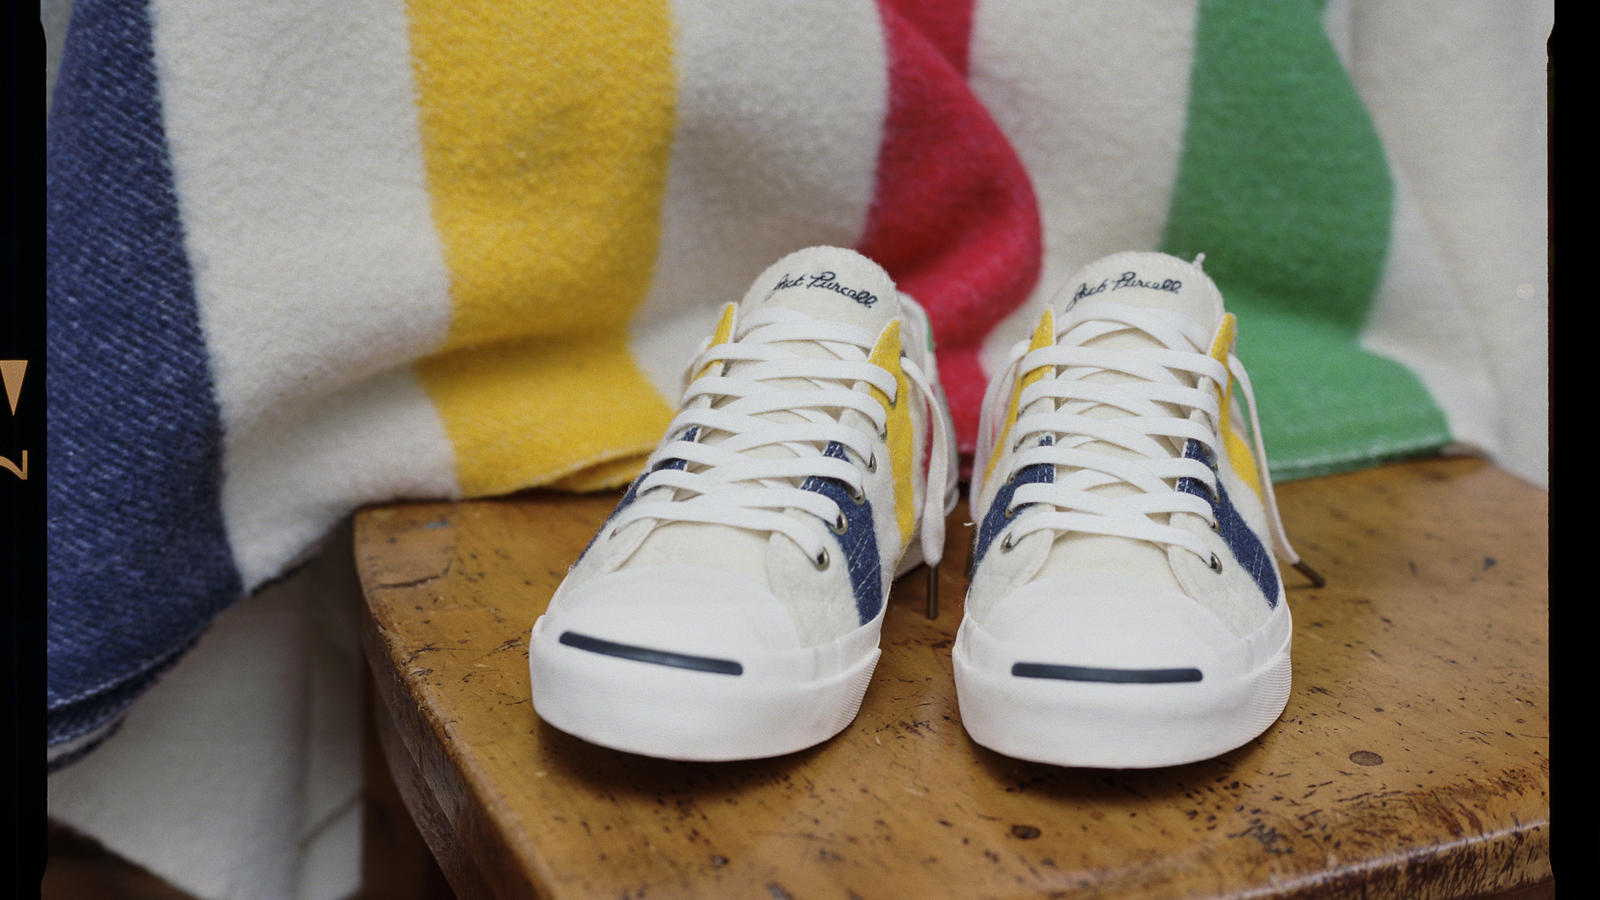 Converse X Hudsons Bay Company Jack Purcell Shelf Original